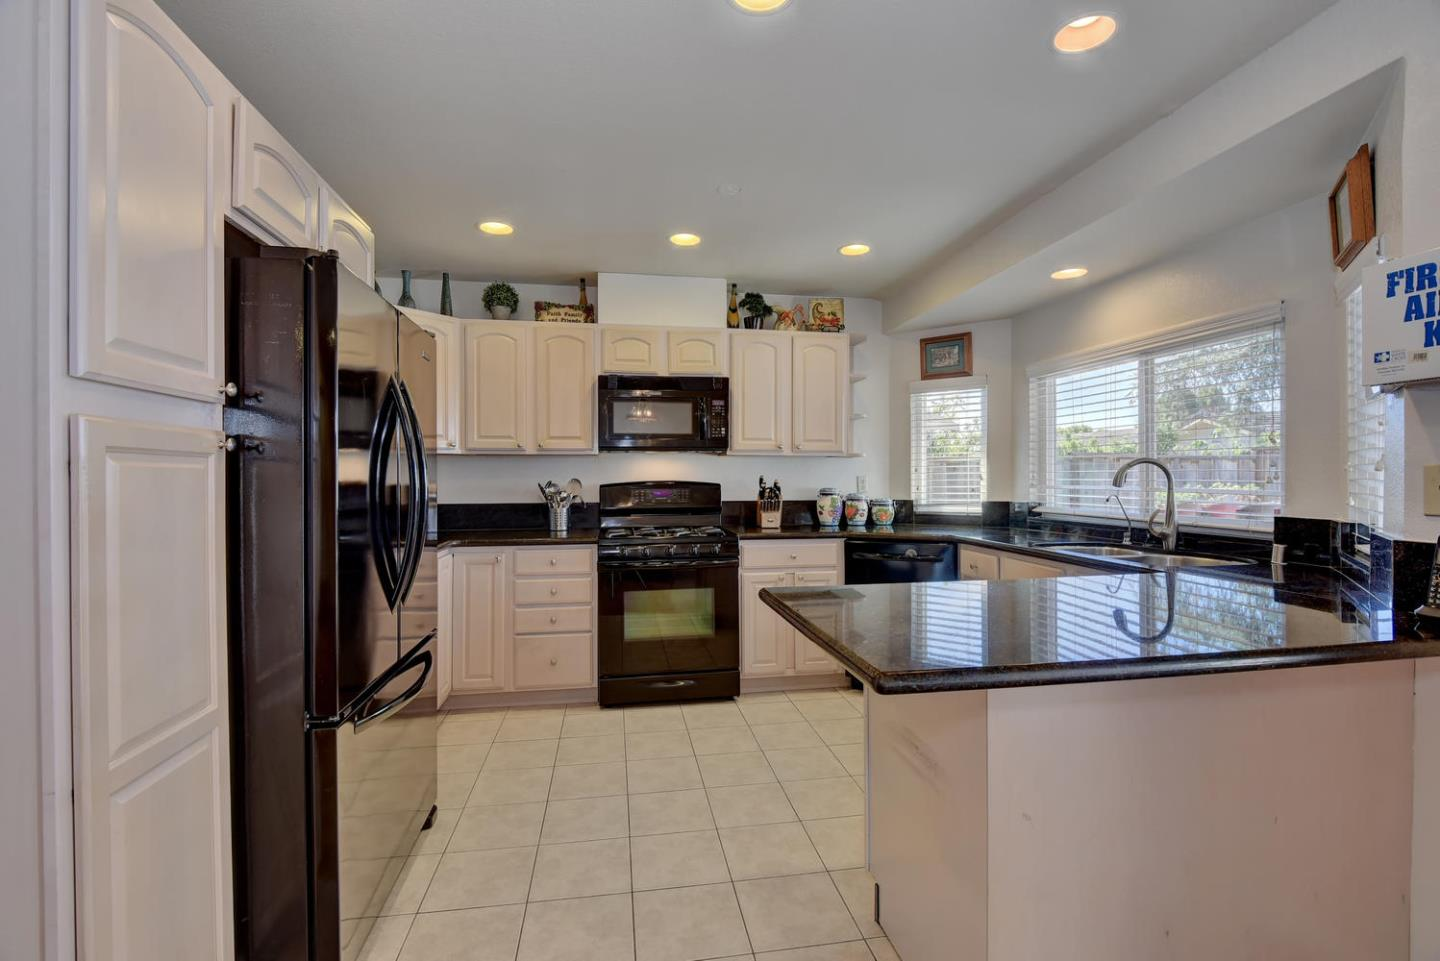 Additional photo for property listing at 959 Reed Ave  SUNNYVALE, CALIFORNIA 94086